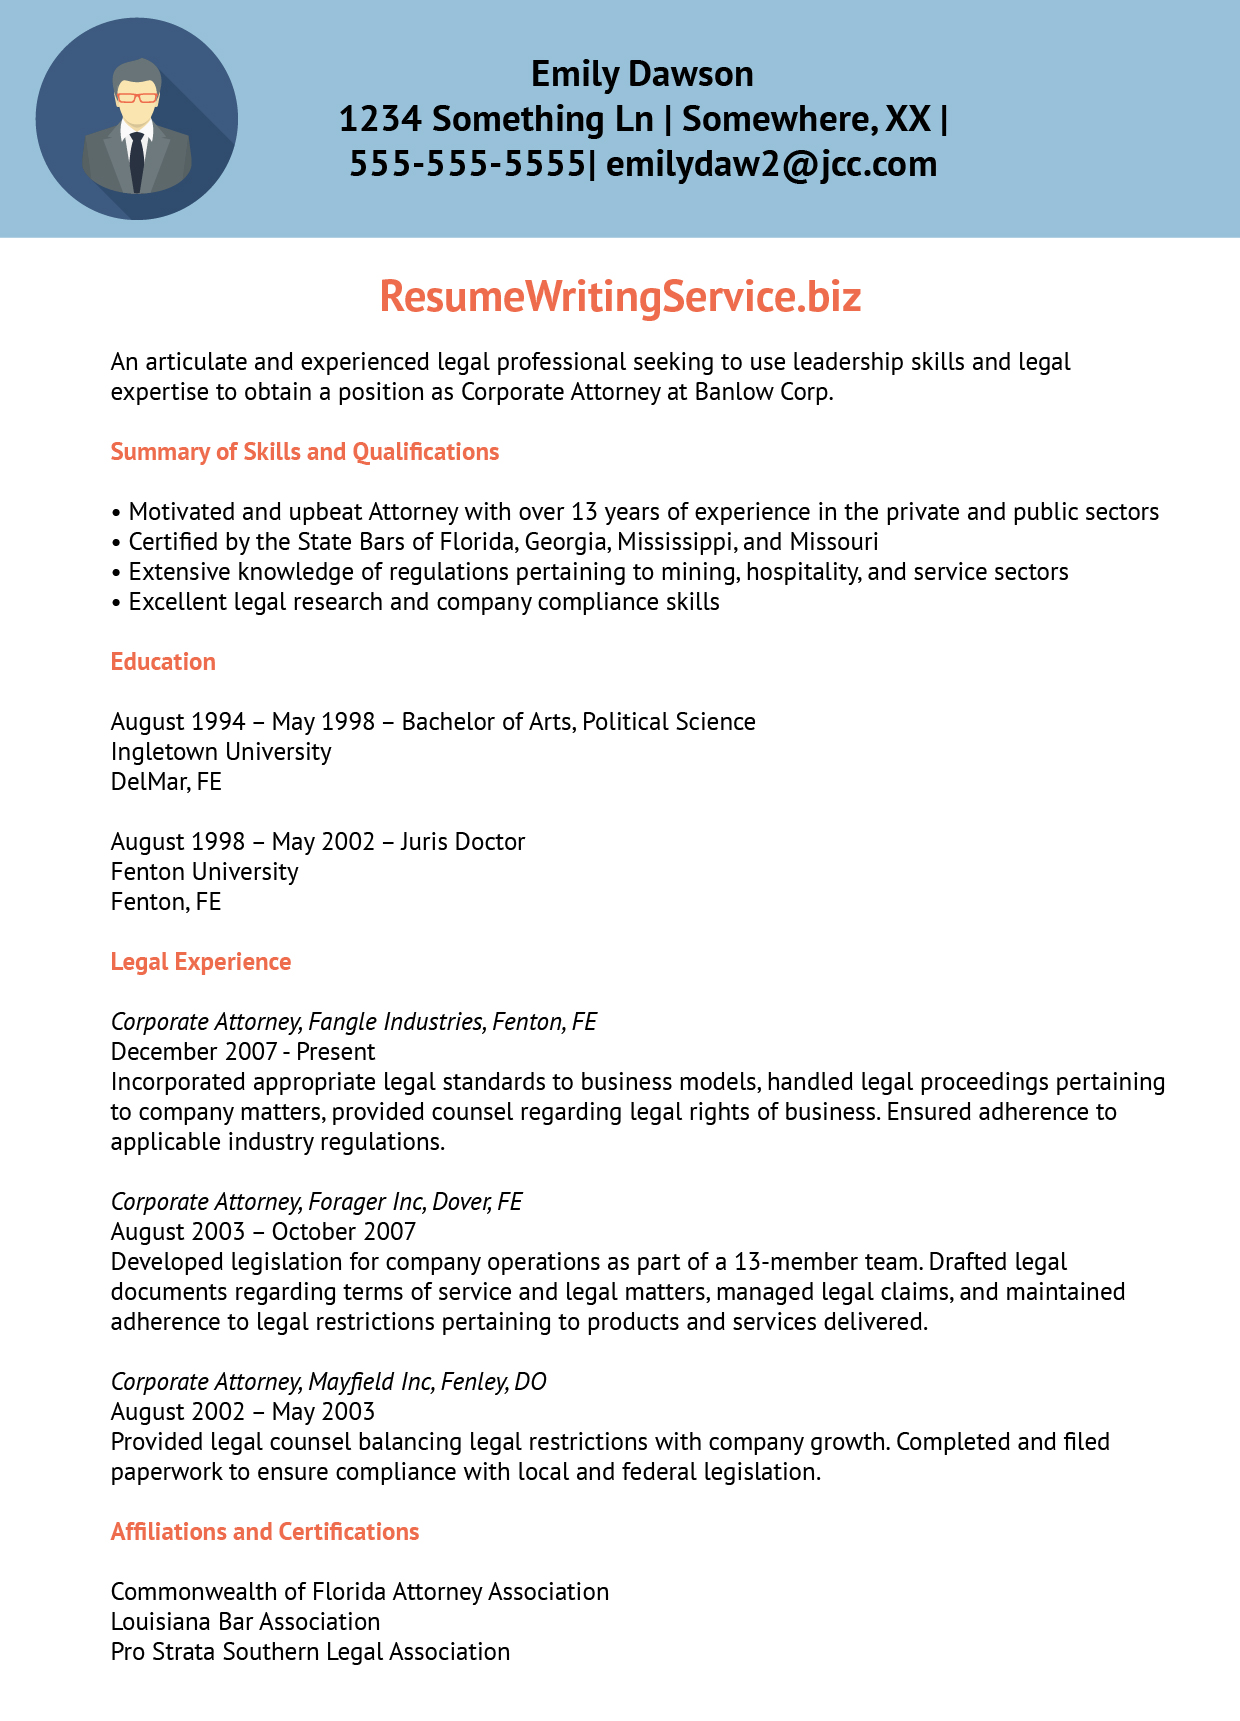 Professional resume writing service michigan